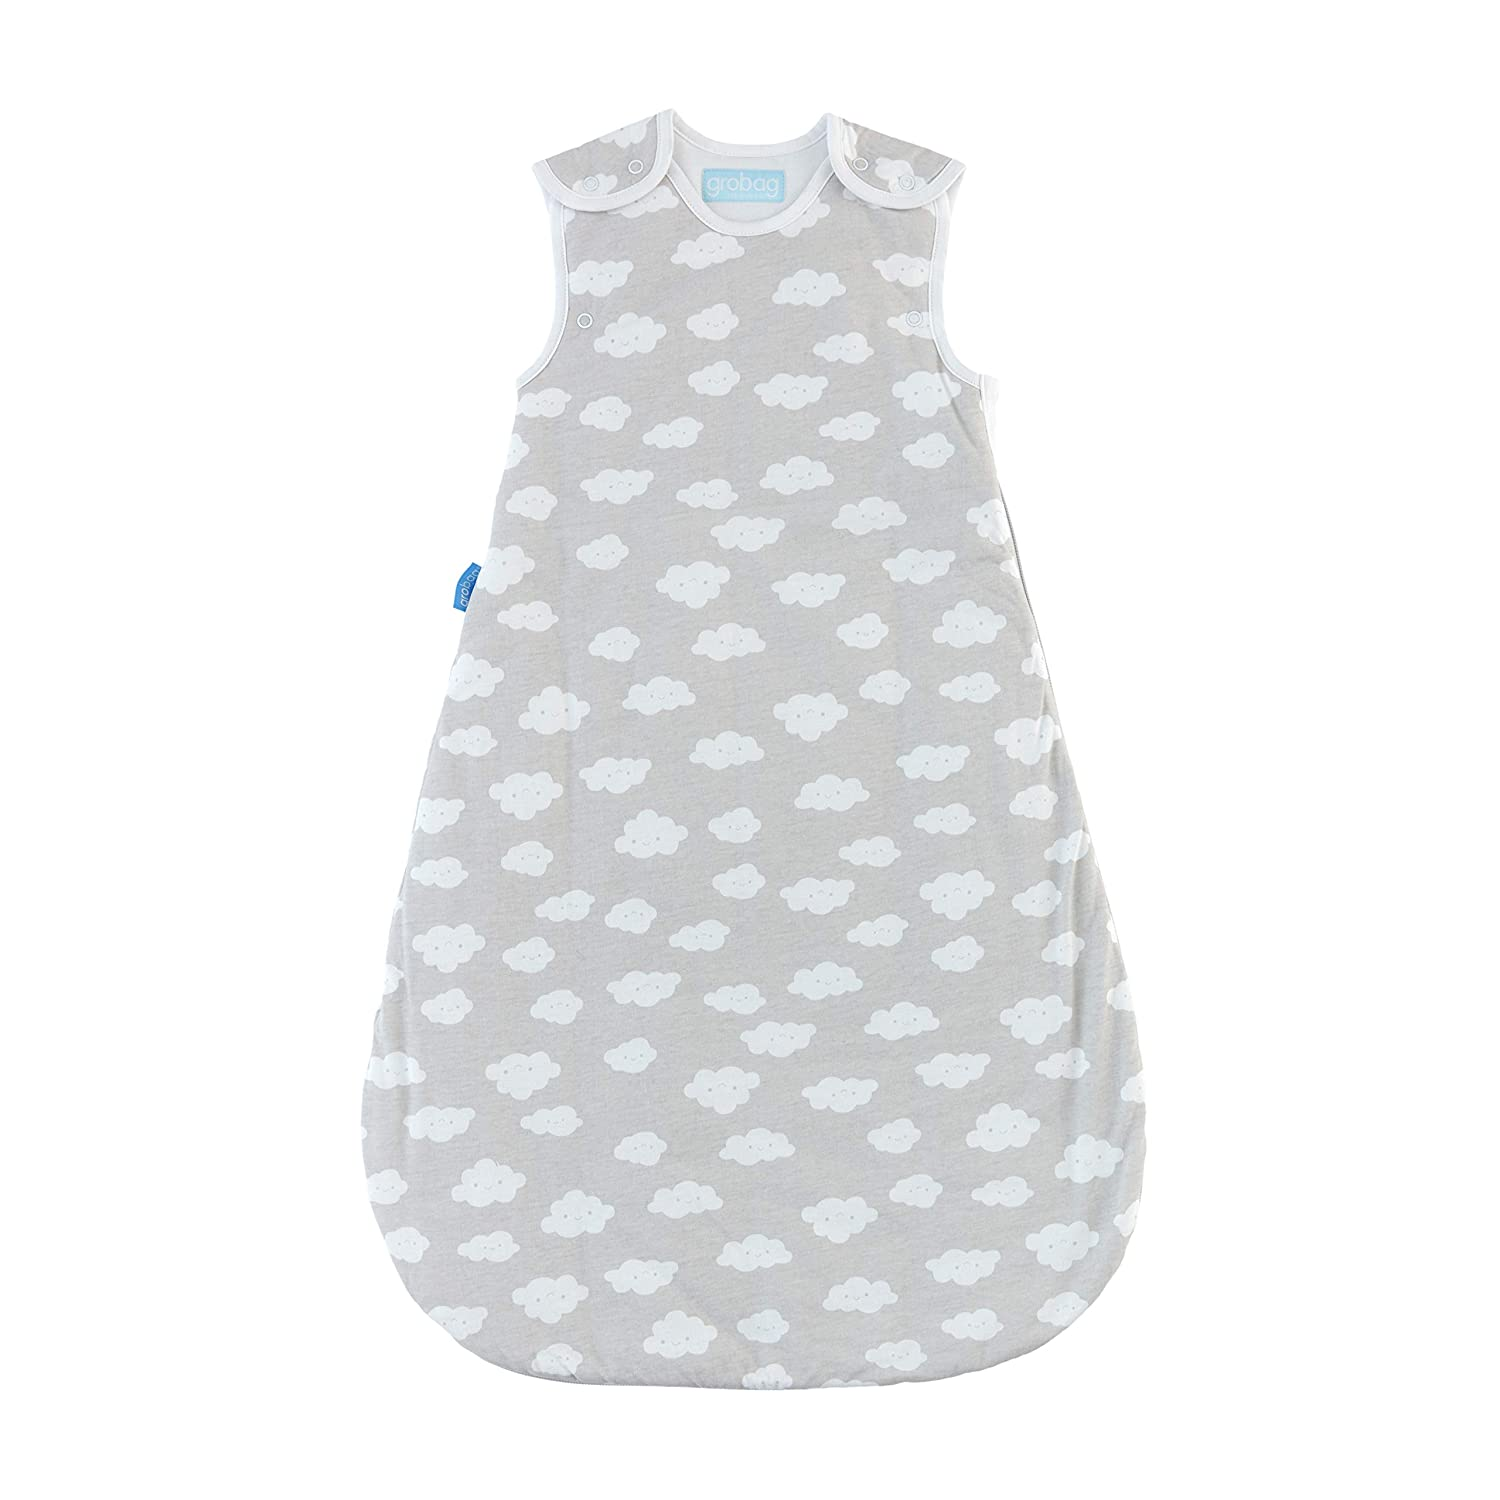 official photos a56d5 1d787 Tommee Tippee Grobag Baby Cotton Sleeping Bag, Sleeping Sack - Light 1.0  Tog for 69-74 Degree F - Fluffy Clouds - Medium Size, 6-18 months, Grey